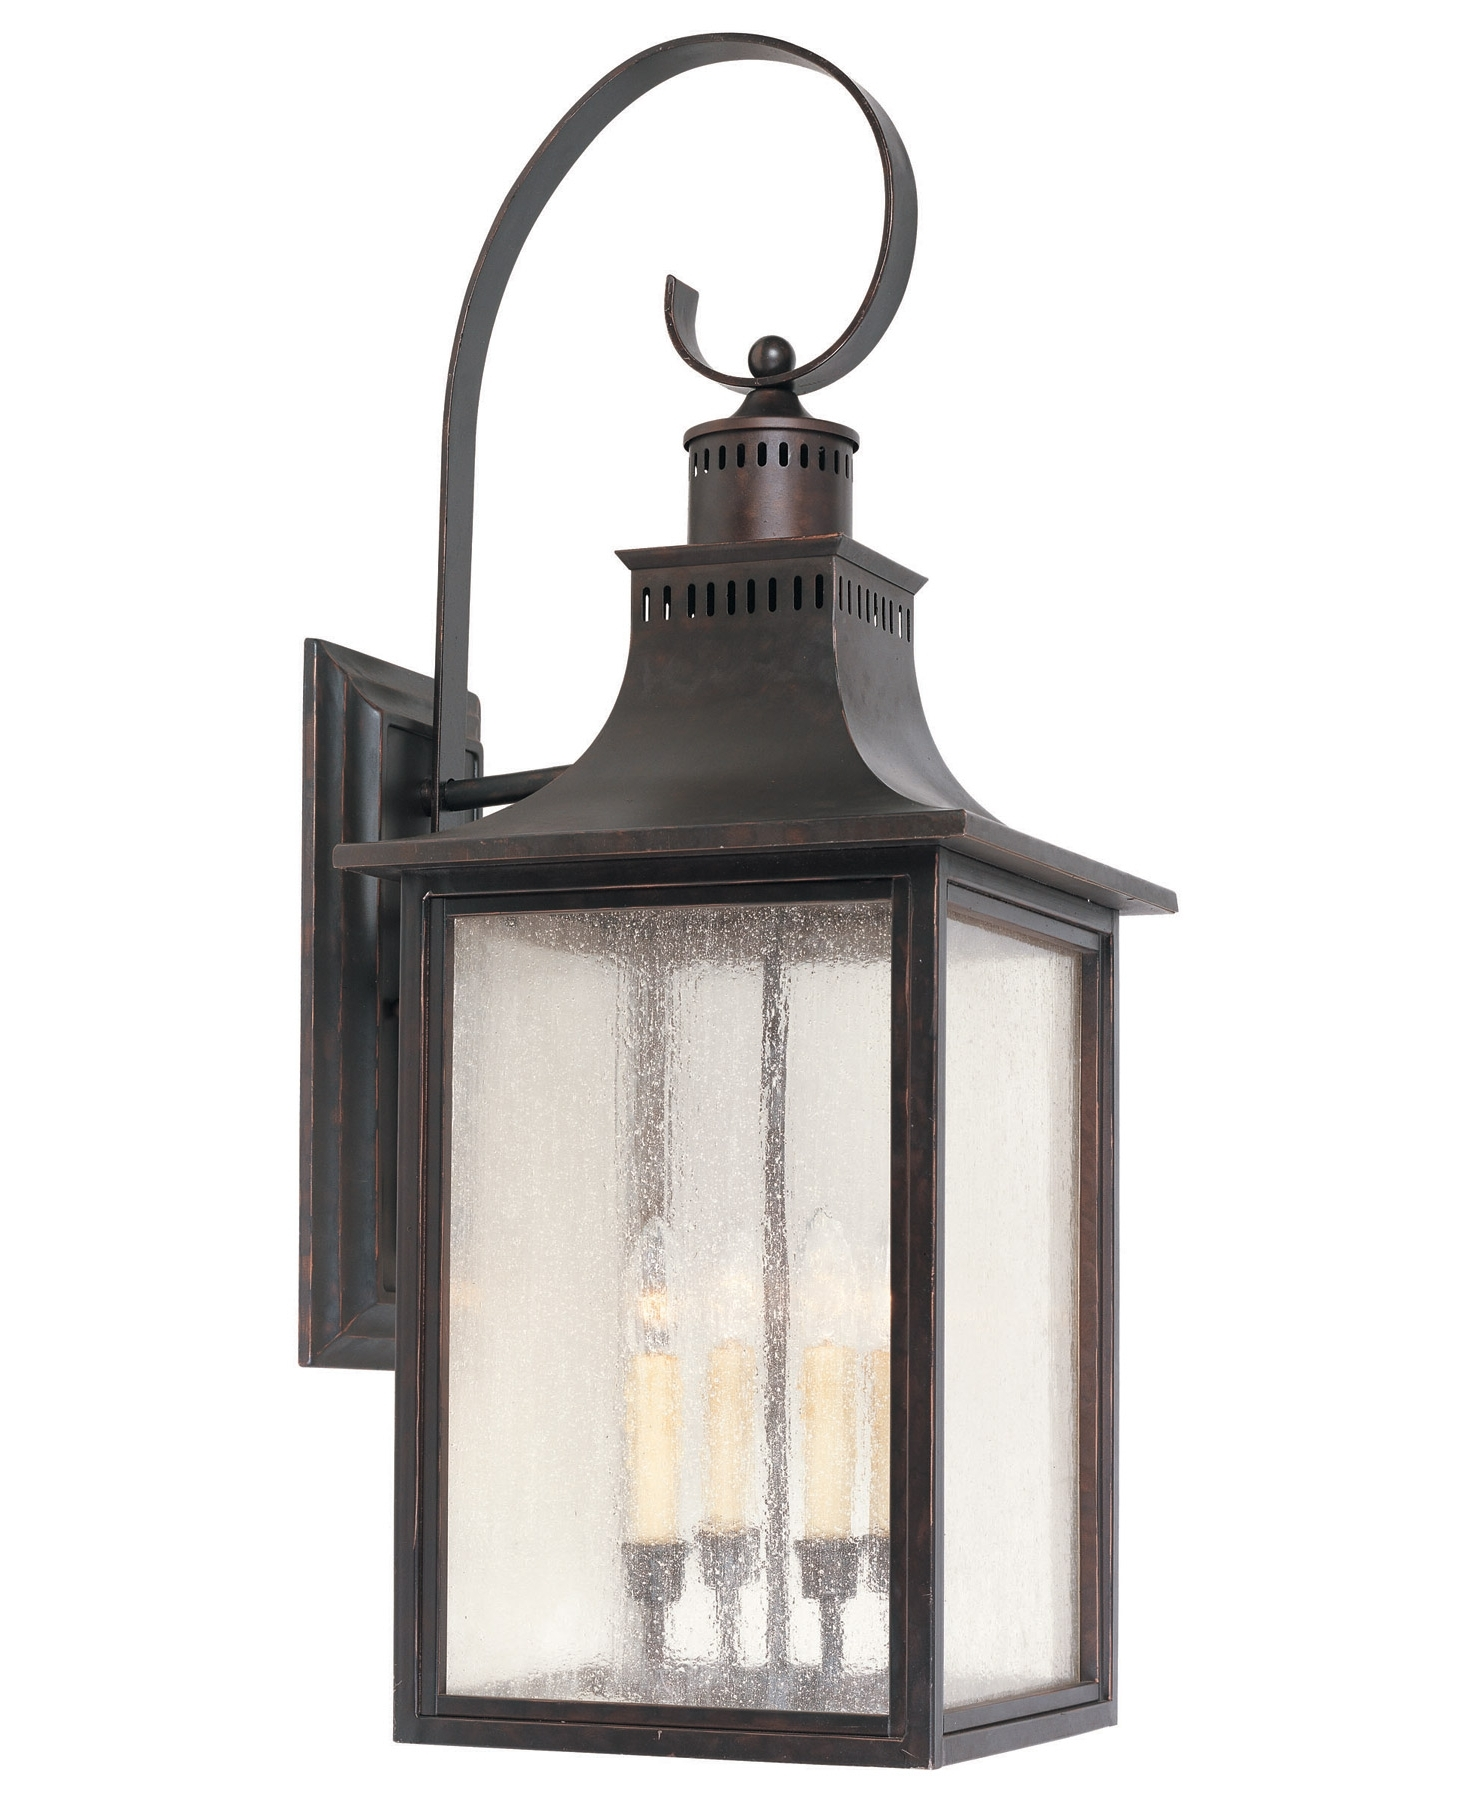 Savoy House 5 257 13 Monte Grande Outdoor Wall Mount Lantern Intended For Favorite Wall Mounted Outdoor Lanterns (View 3 of 20)